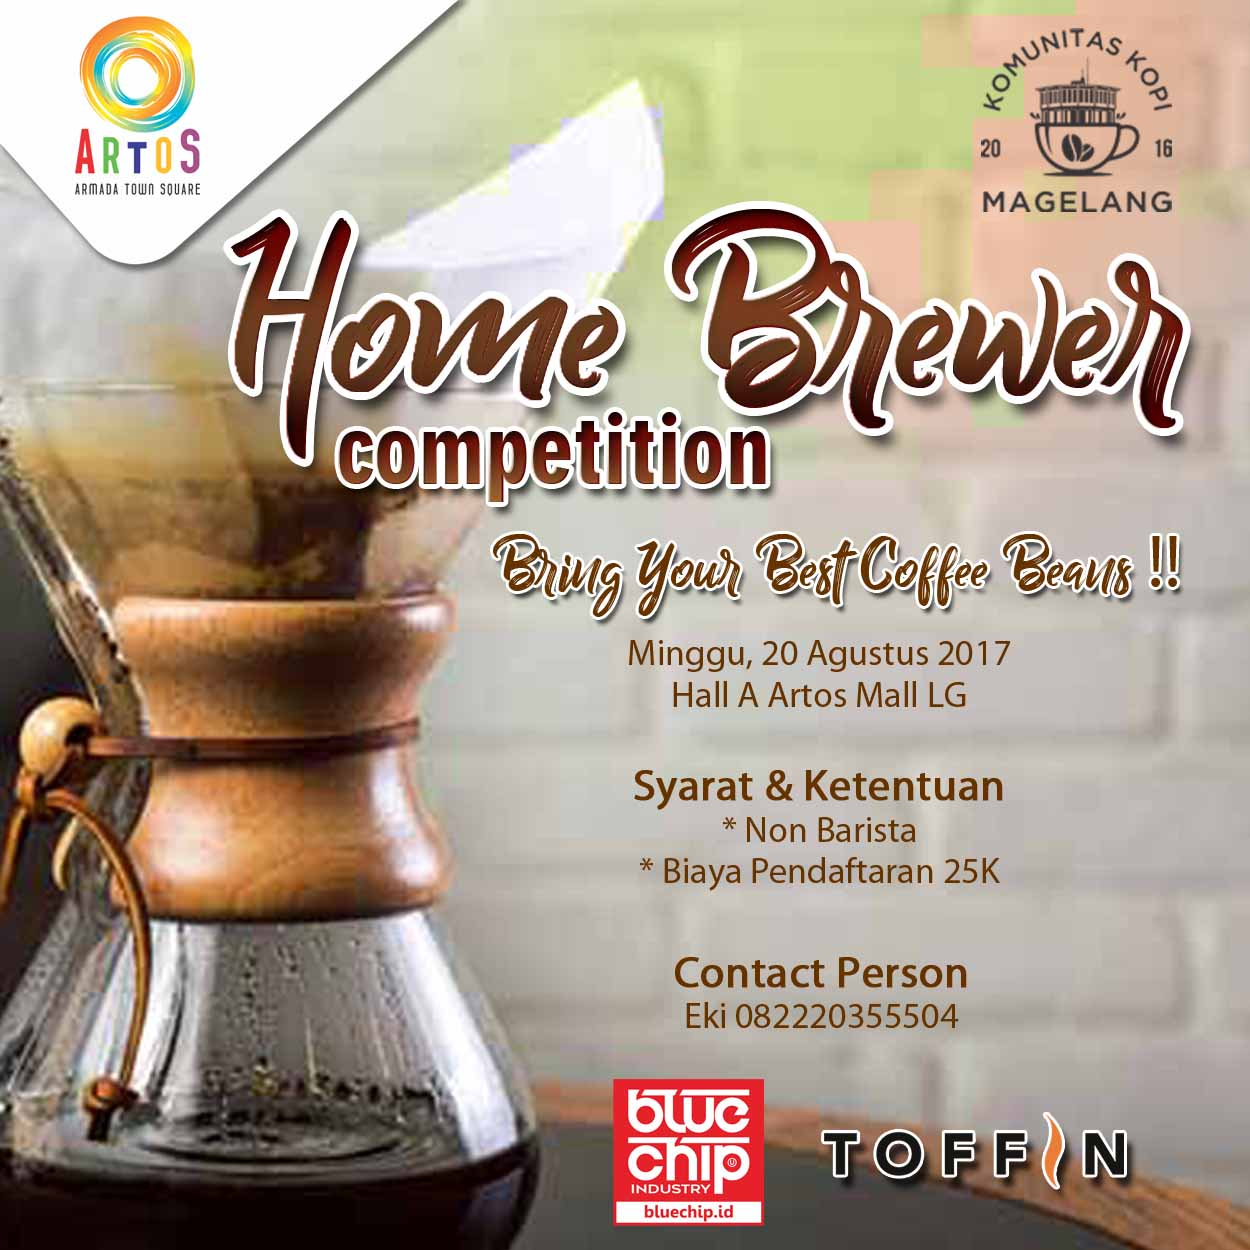 Home Brewer Competition - Artos Mall Magelang, 20 Agustus 2017